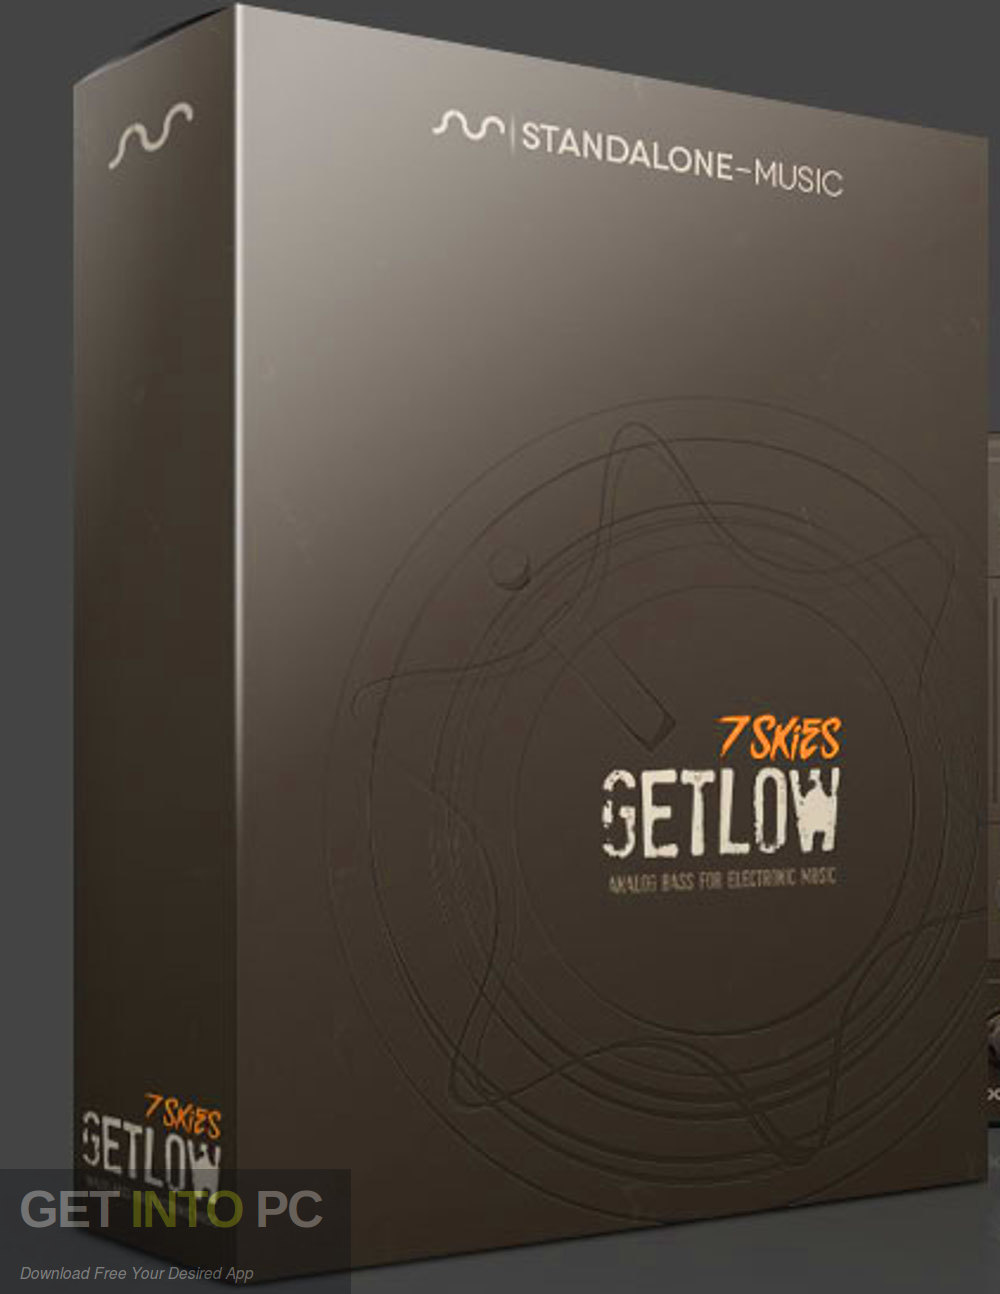 Standalone-music - 7 Skies GETLOW (KONTAKT) Free Download